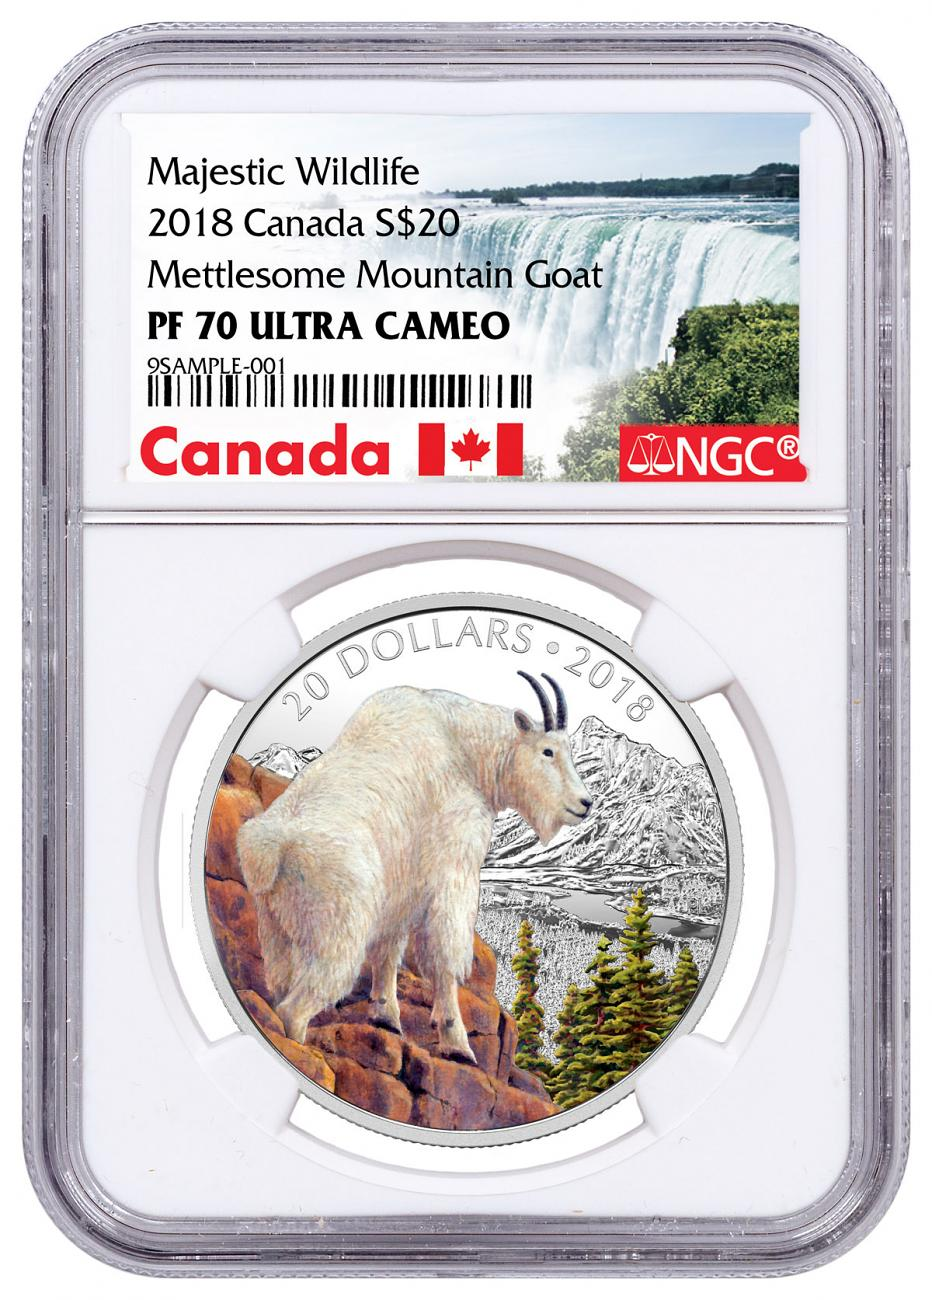 2018 Canada Majestic Wildlife - Mettlesome Mountain Goat 1 oz Silver Proof $20 Coin NGC PF70 UC Exclusive Canada Label